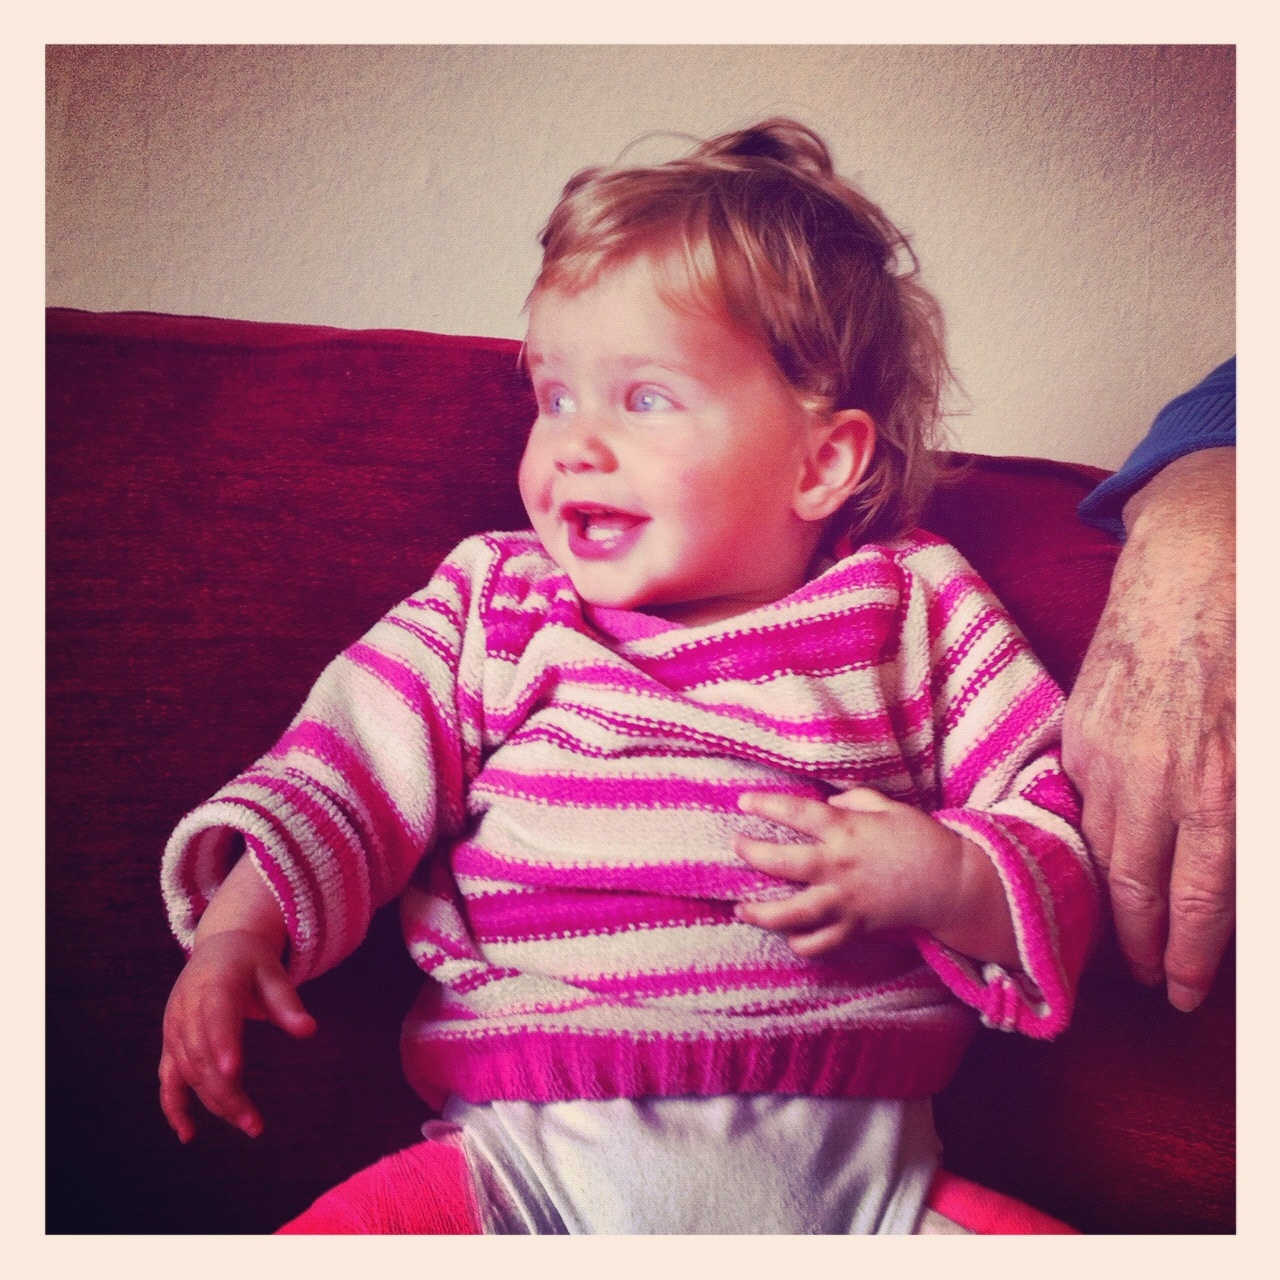 Developmental Dysplasia Of The Hip How To Care For A Child In Spica Cast